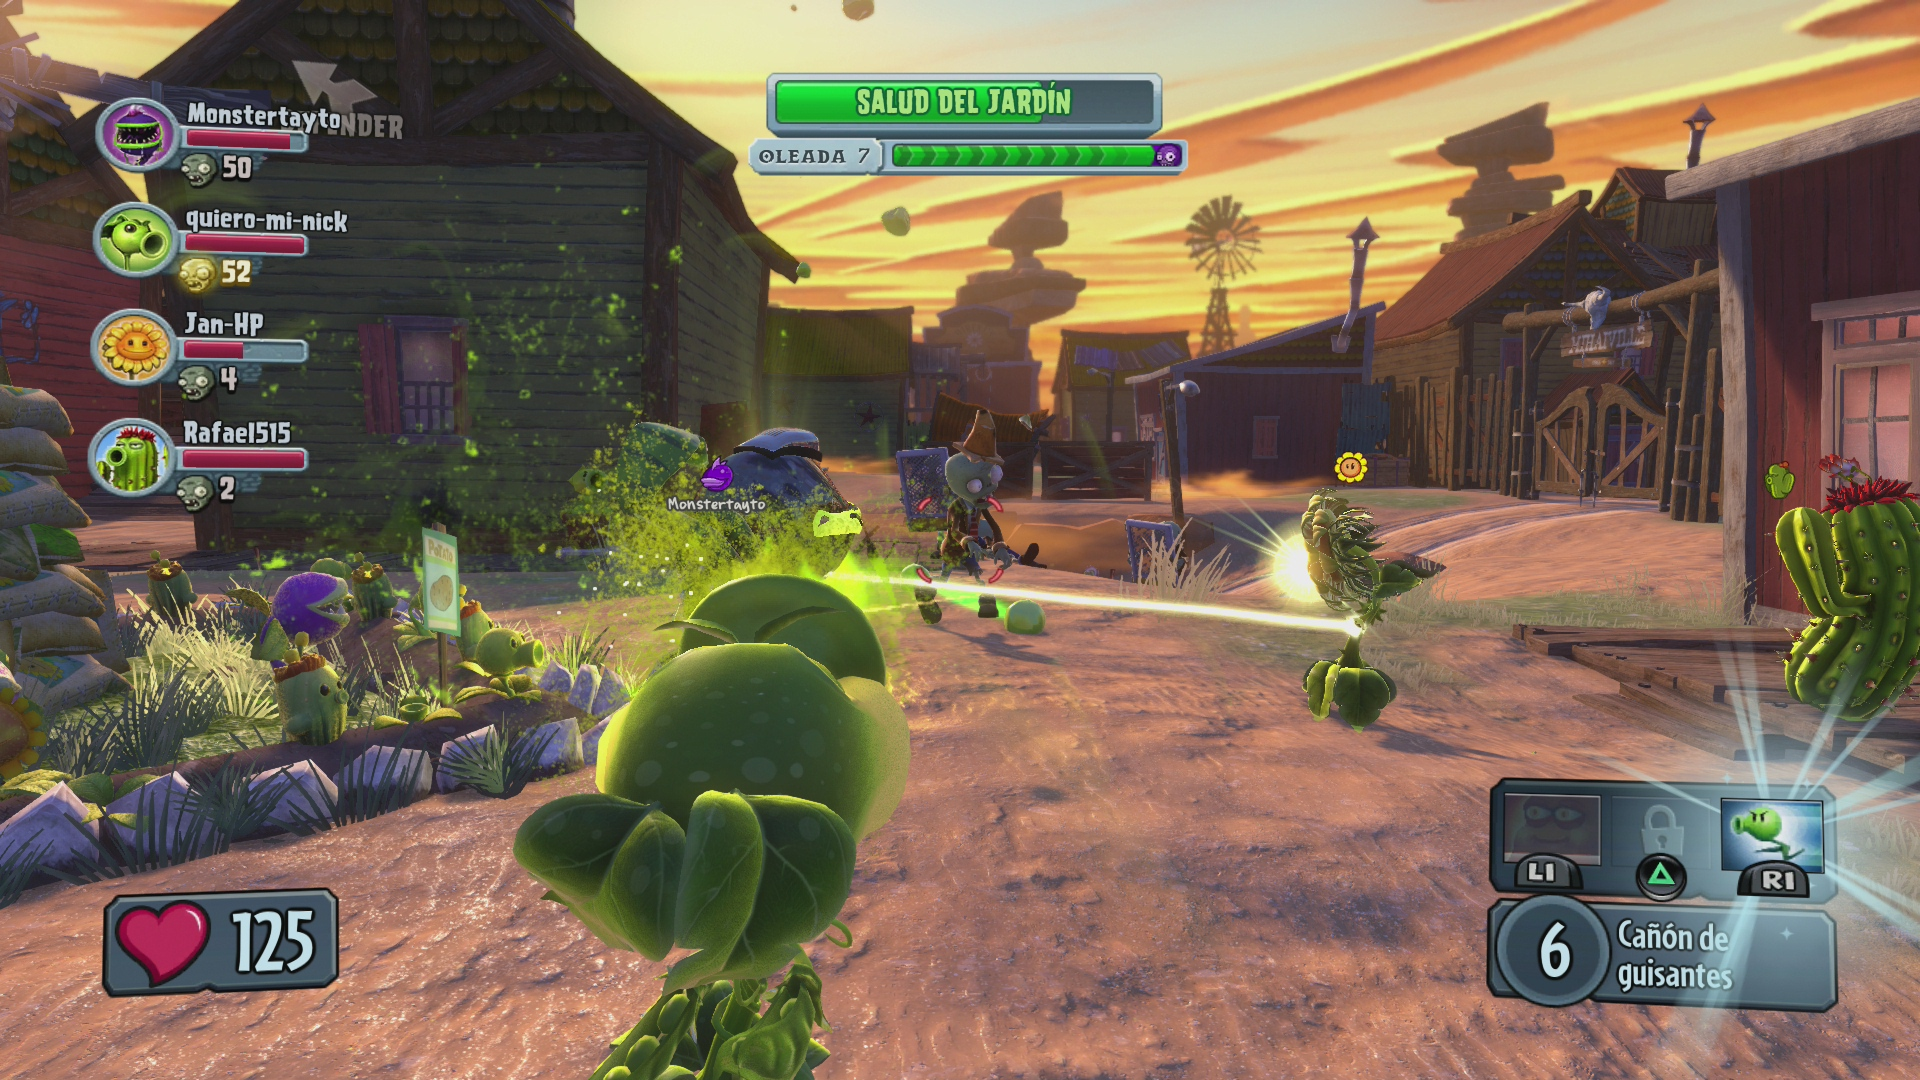 Analisis De Plants Vs Zombies Garden Warfare En Ps4 Hobbyconsolas